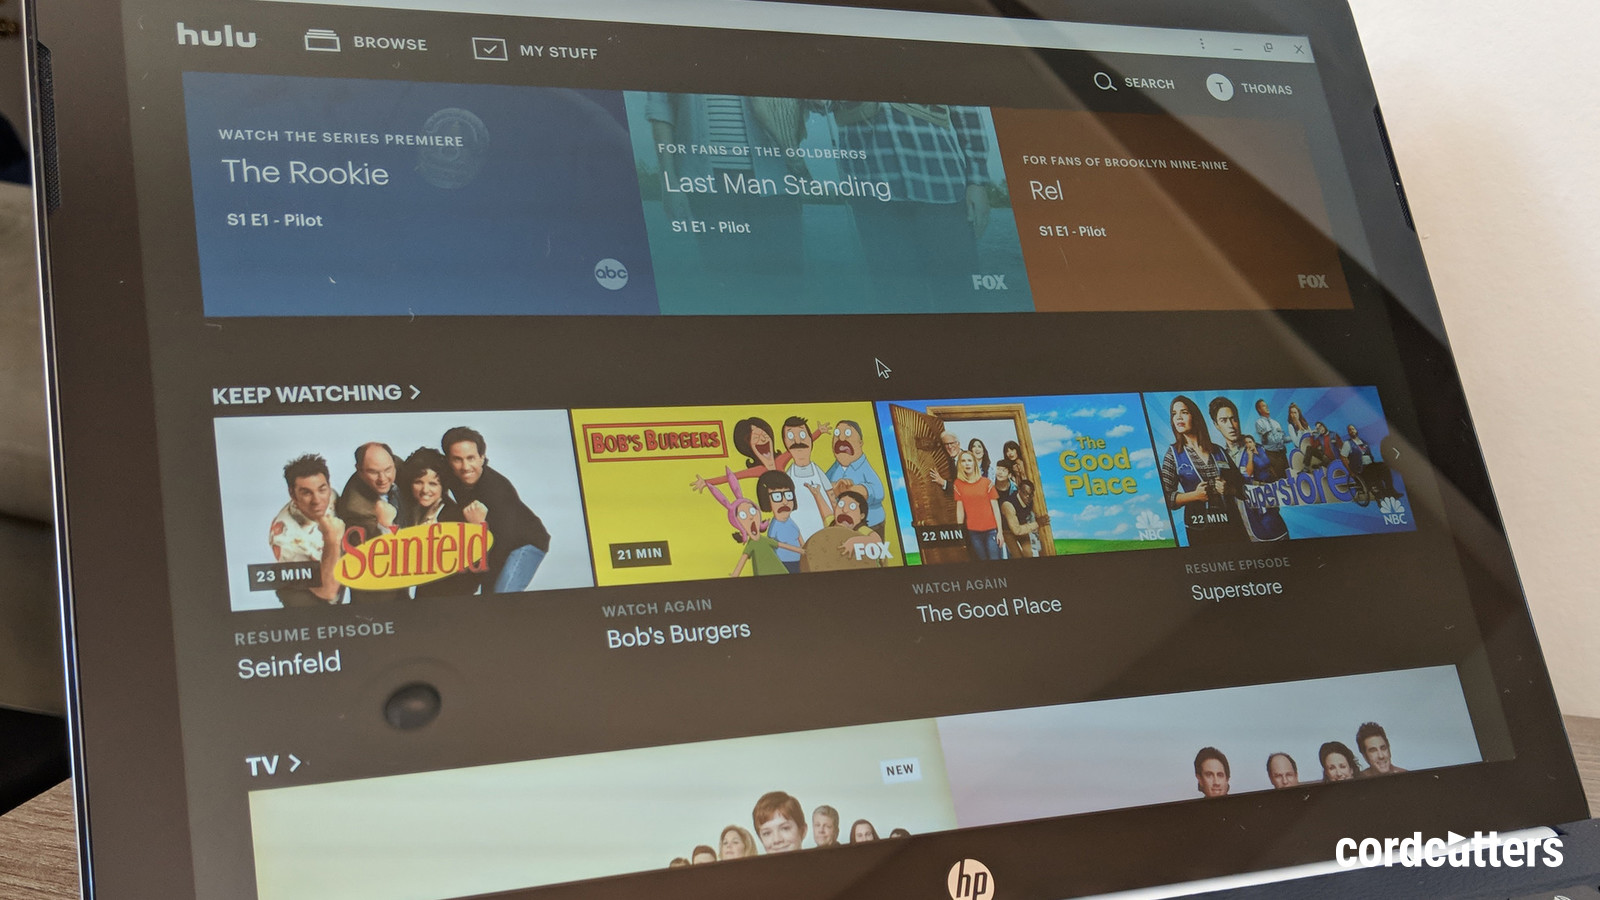 How to enable dark mode for Hulu CordCutters 1600x900